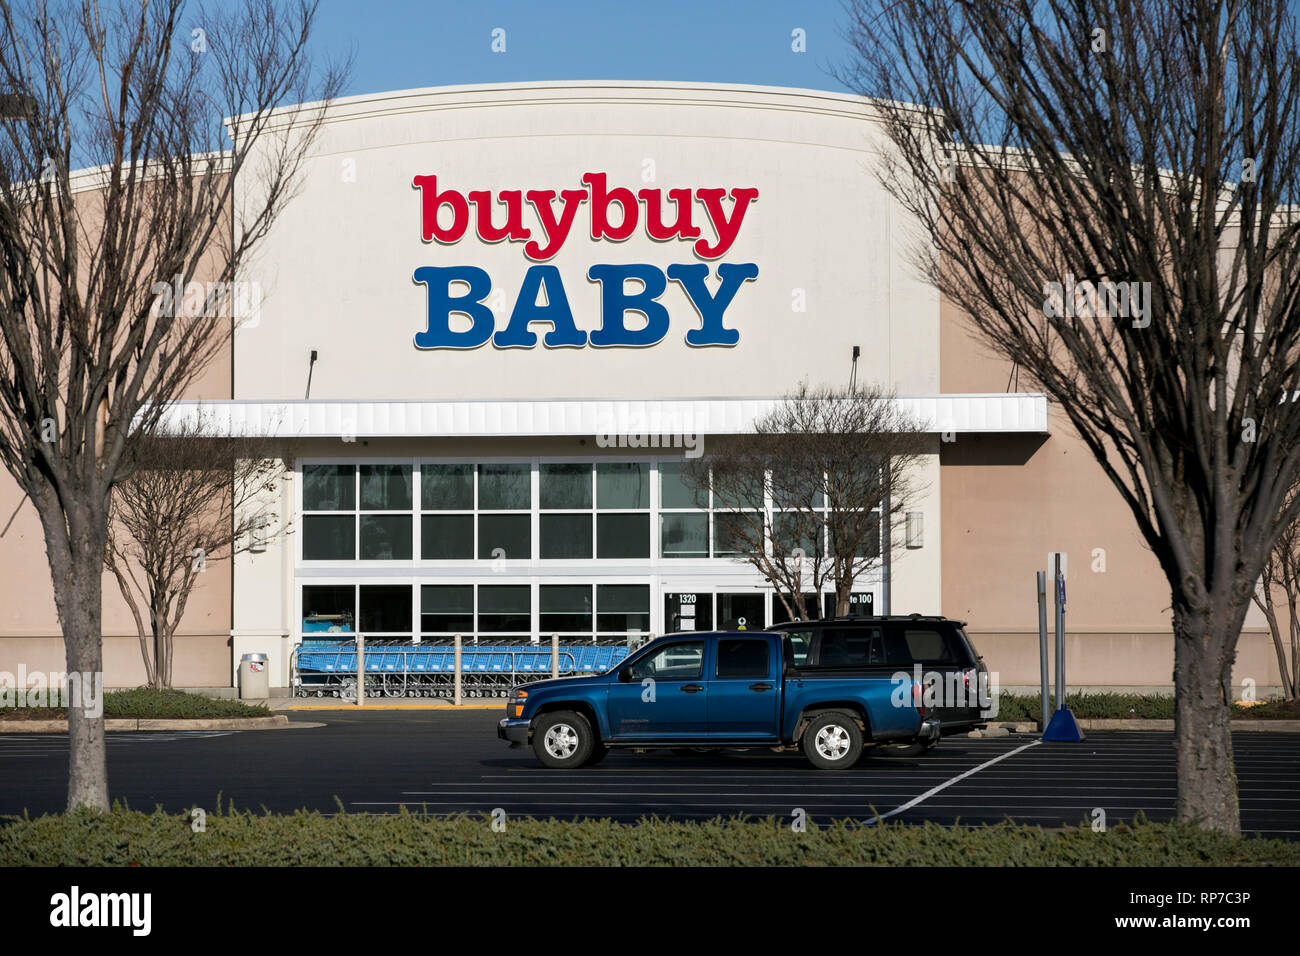 A logo sign outside of a Buy Buy Baby retail store location in Fredericksburg, Virginia on February 19, 2019. - Stock Image